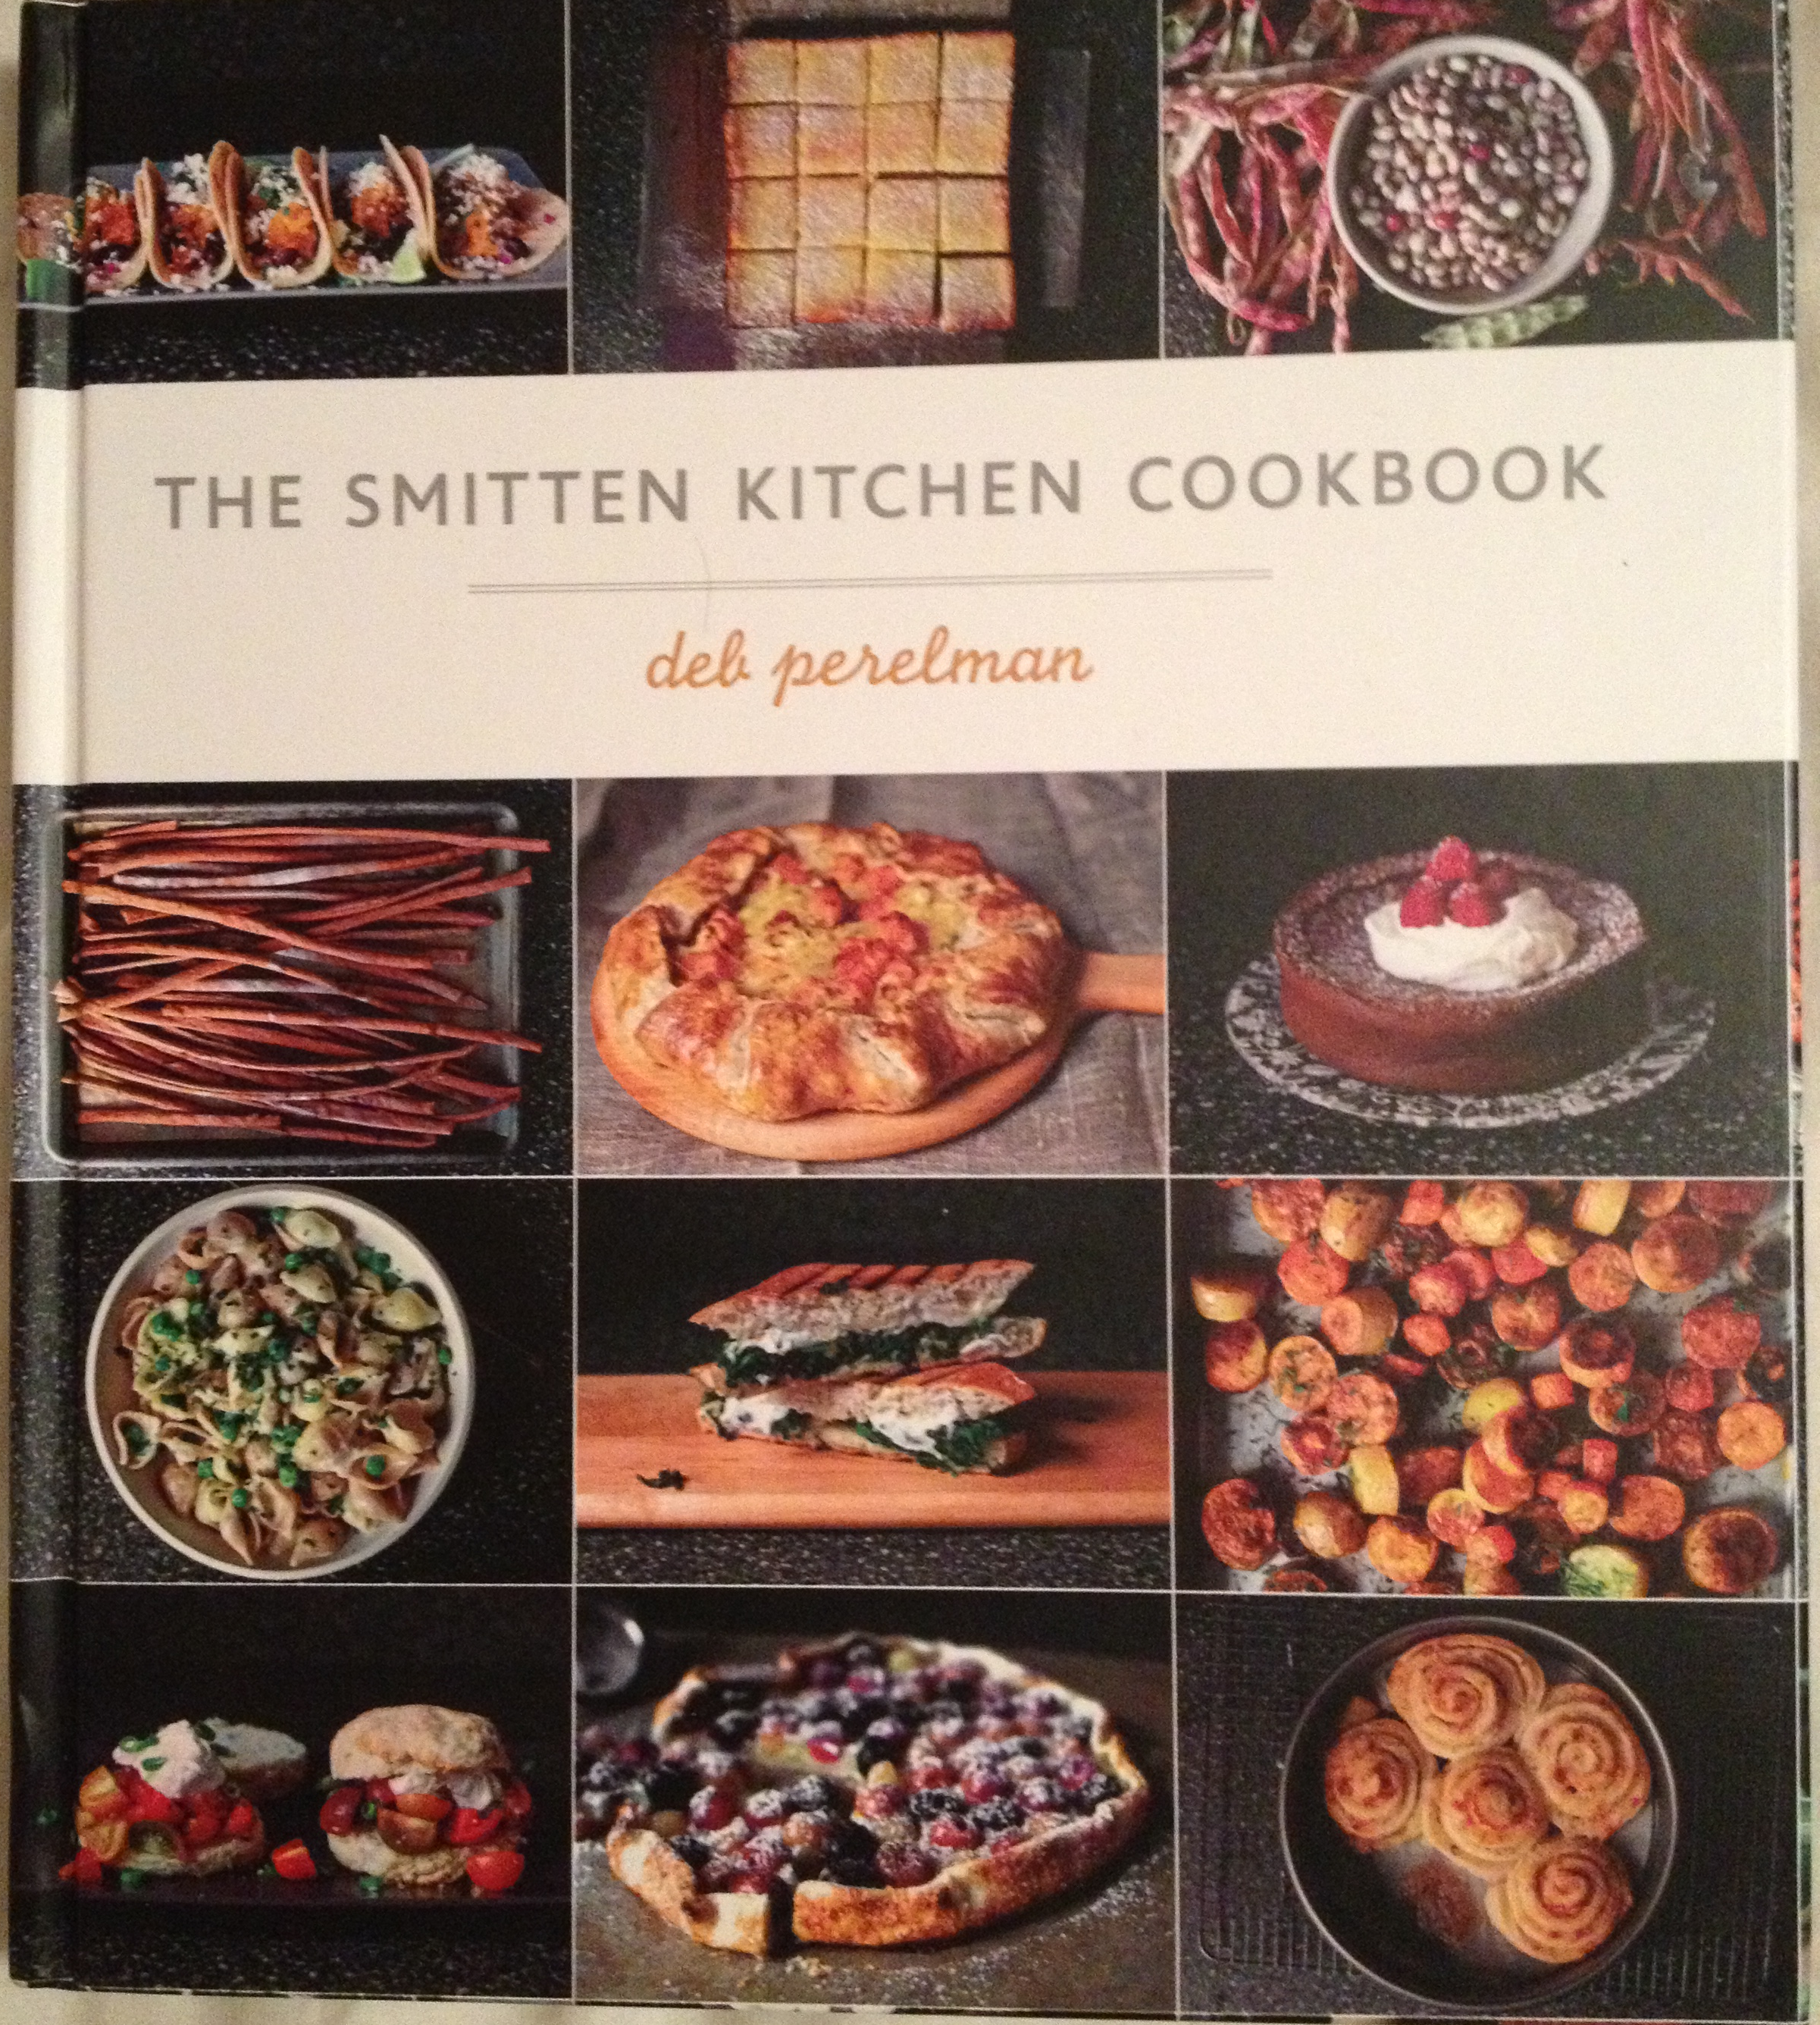 Smitten Kitchen the smitten kitchen cookbook: a review